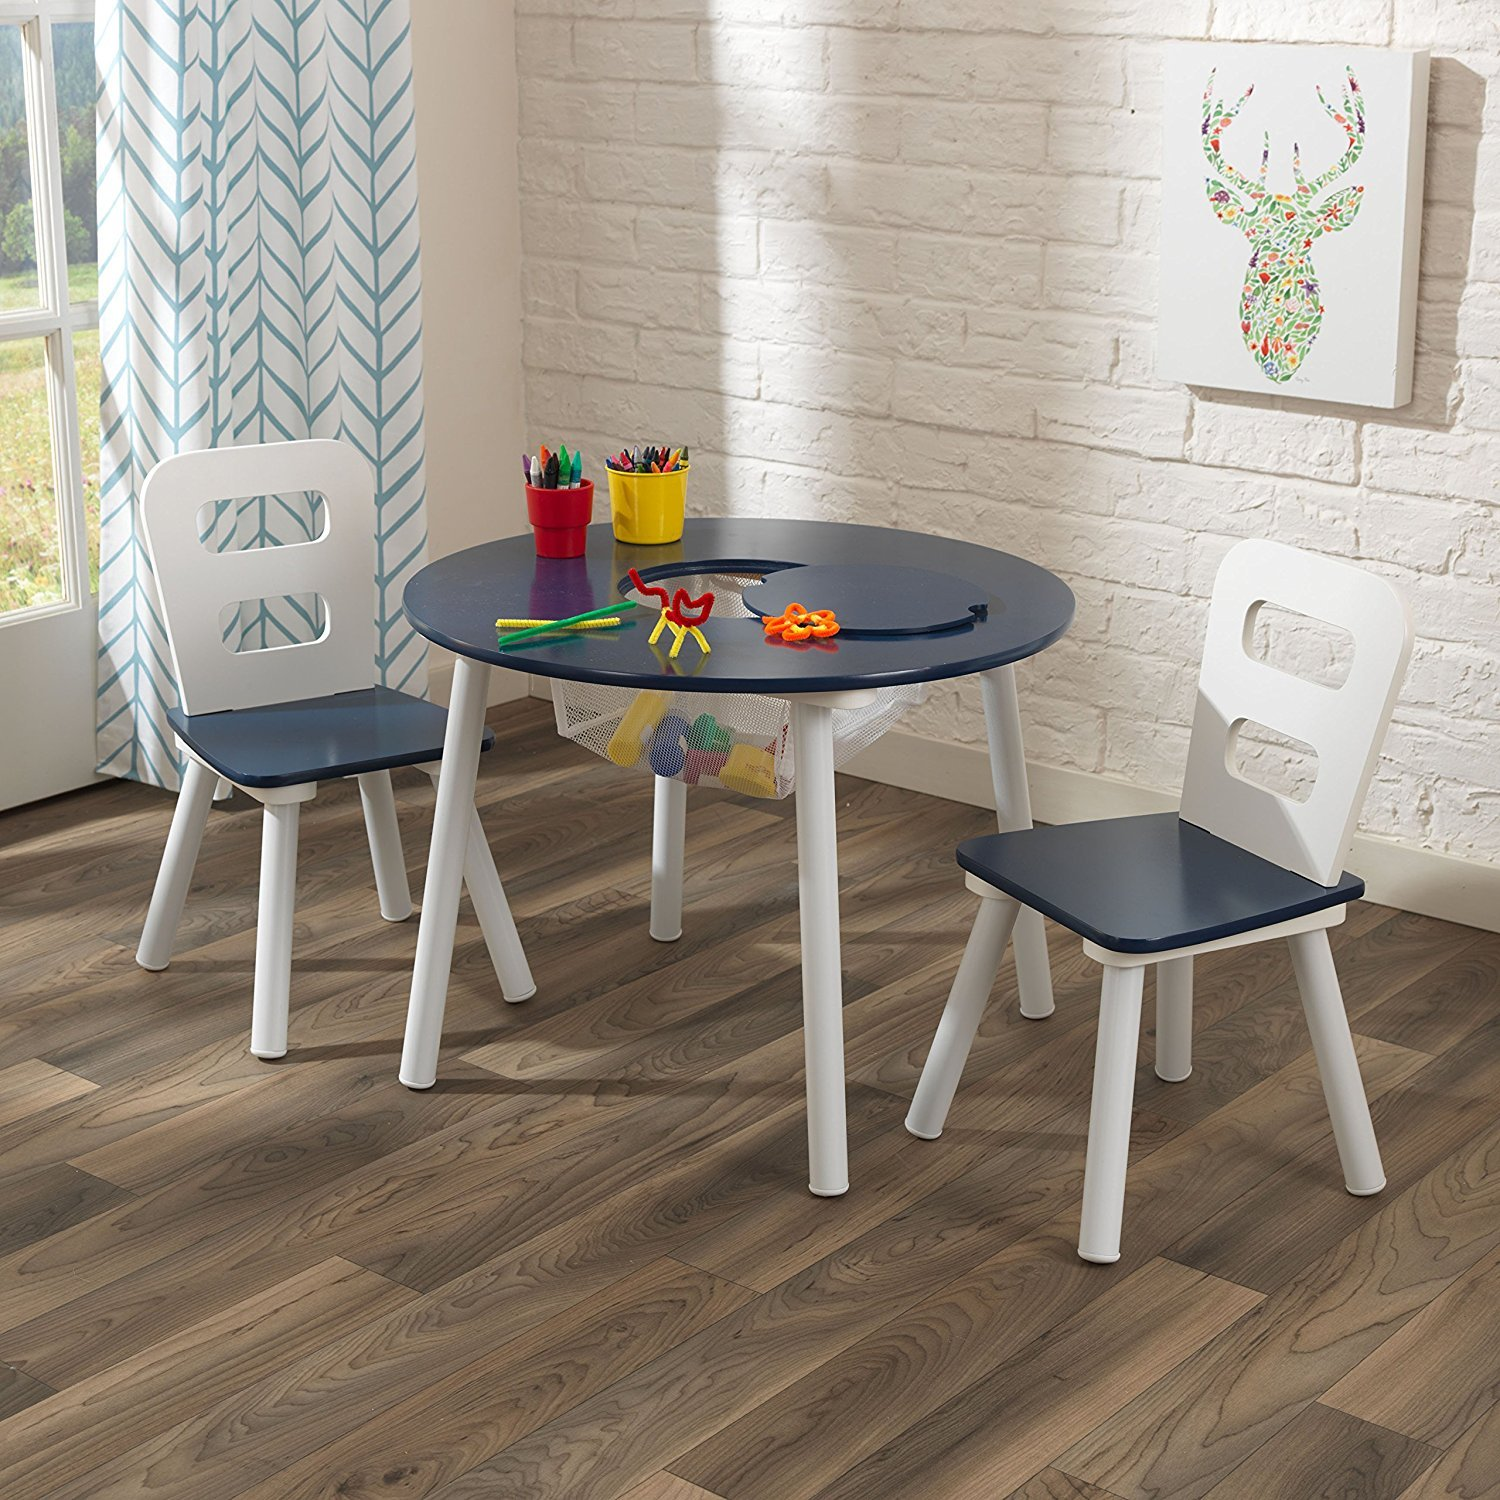 Amazon KidKraft Round Table and 2 Chair Set White Navy